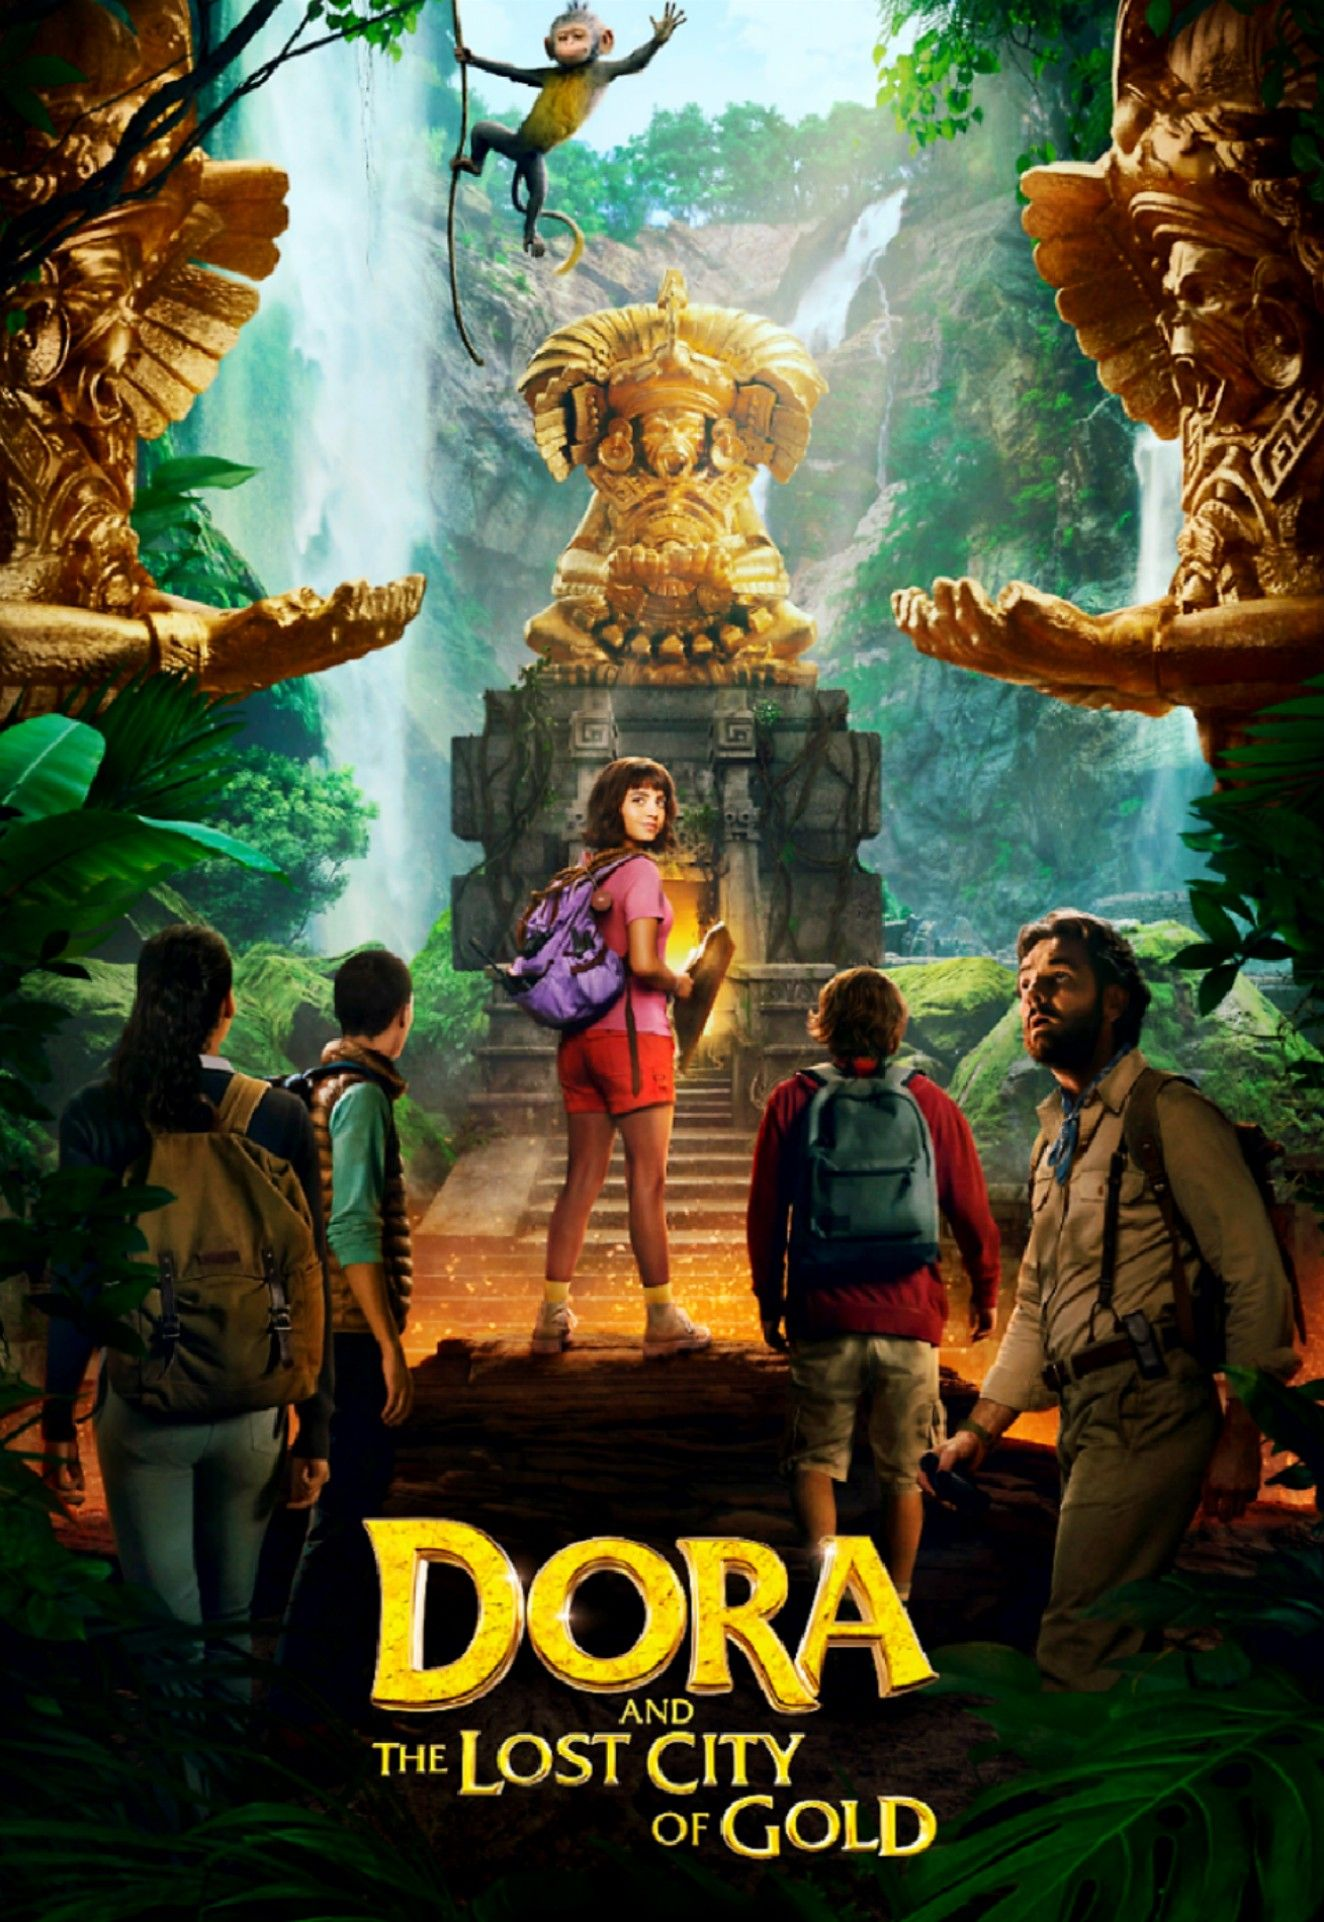 Dora And The Lost City Of Gold Isabela Moner Lost City Of Gold Lost City Full Movies